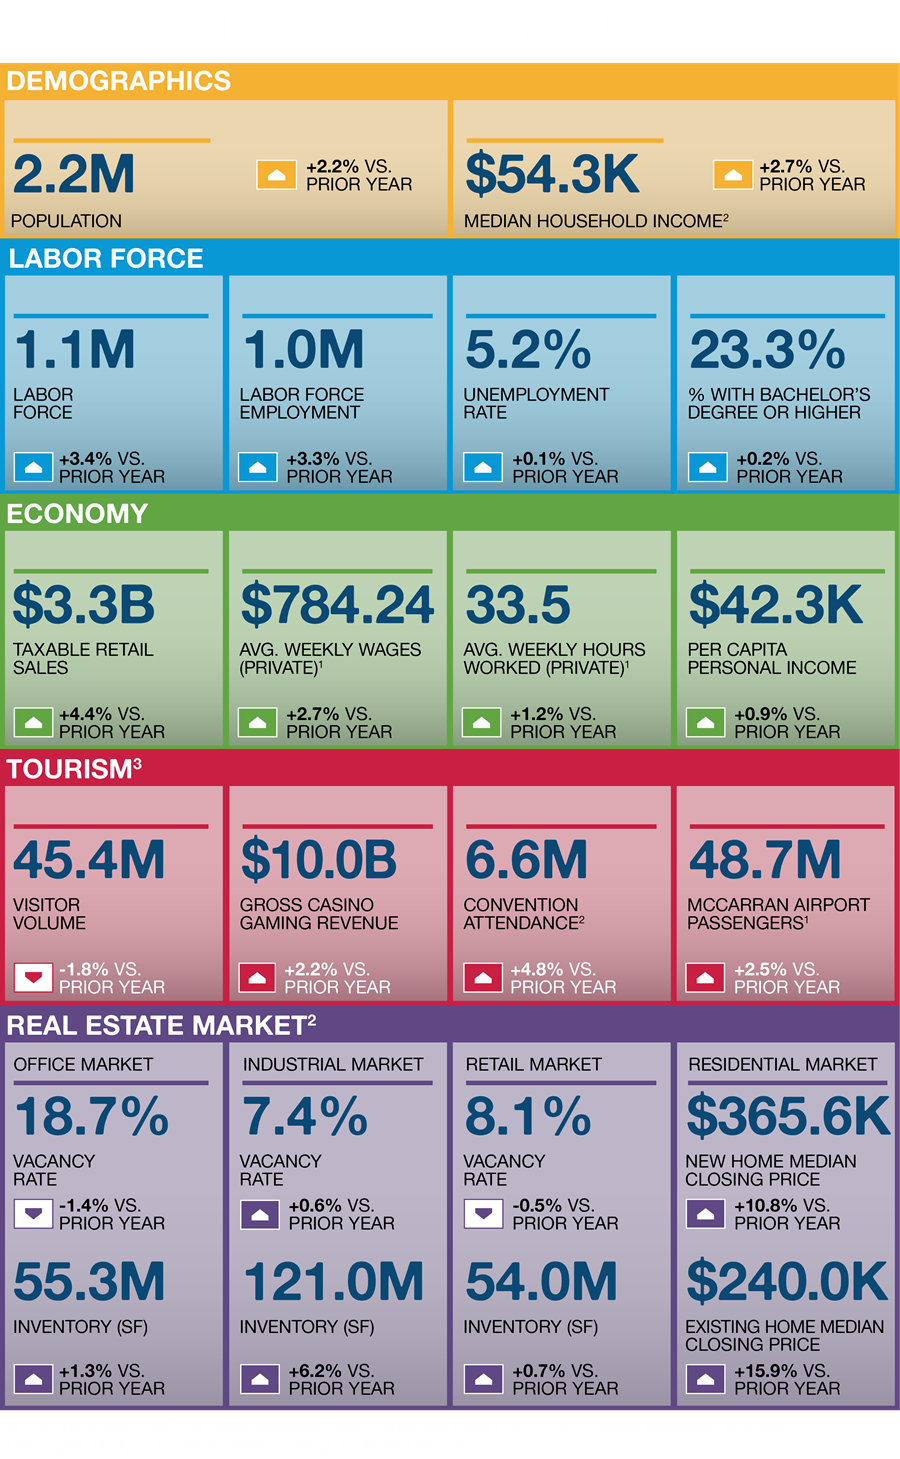 By the numbers data image